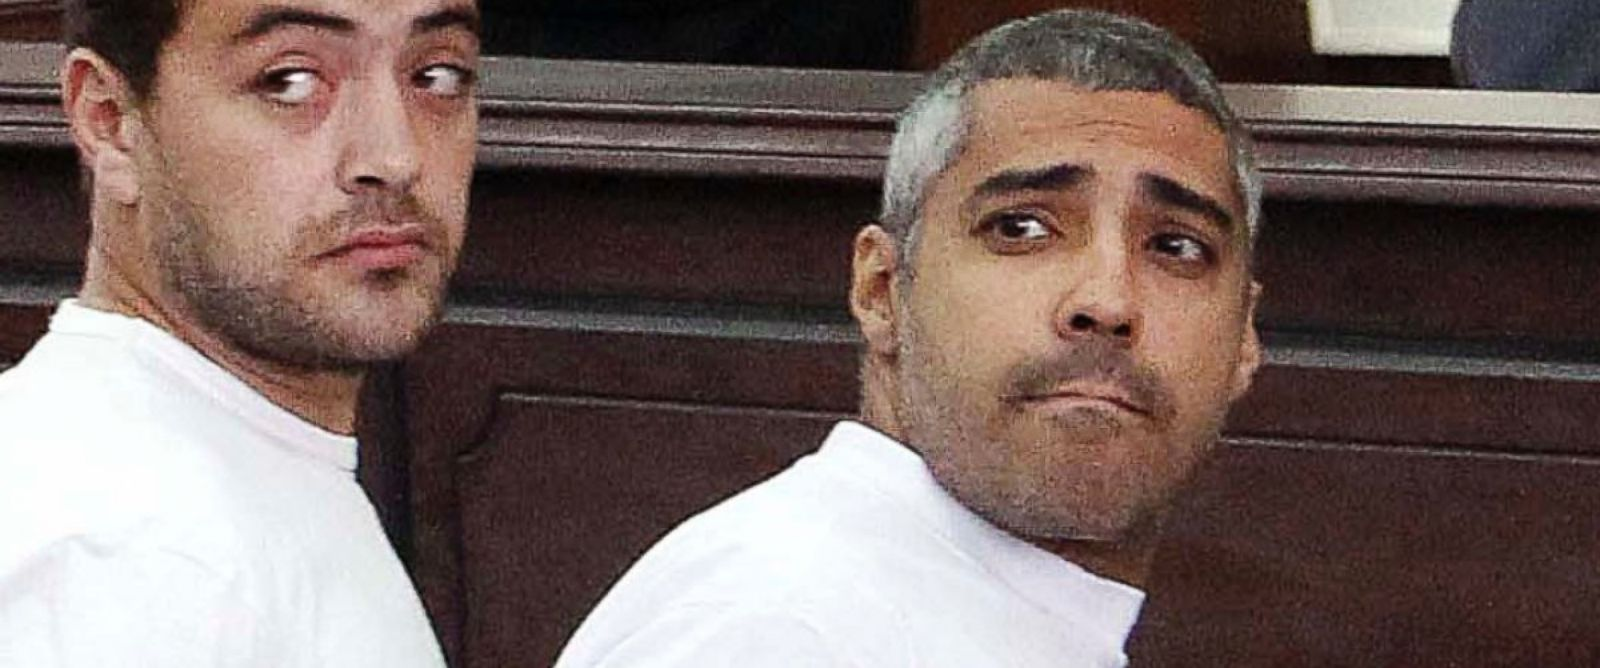 PHOTO: In this March 31, 2014 file photo, Baher Mohamed, left, and Mohammed Fahmy, right, appear in court along with several other defendants during their trial on terror charges, in Cairo.